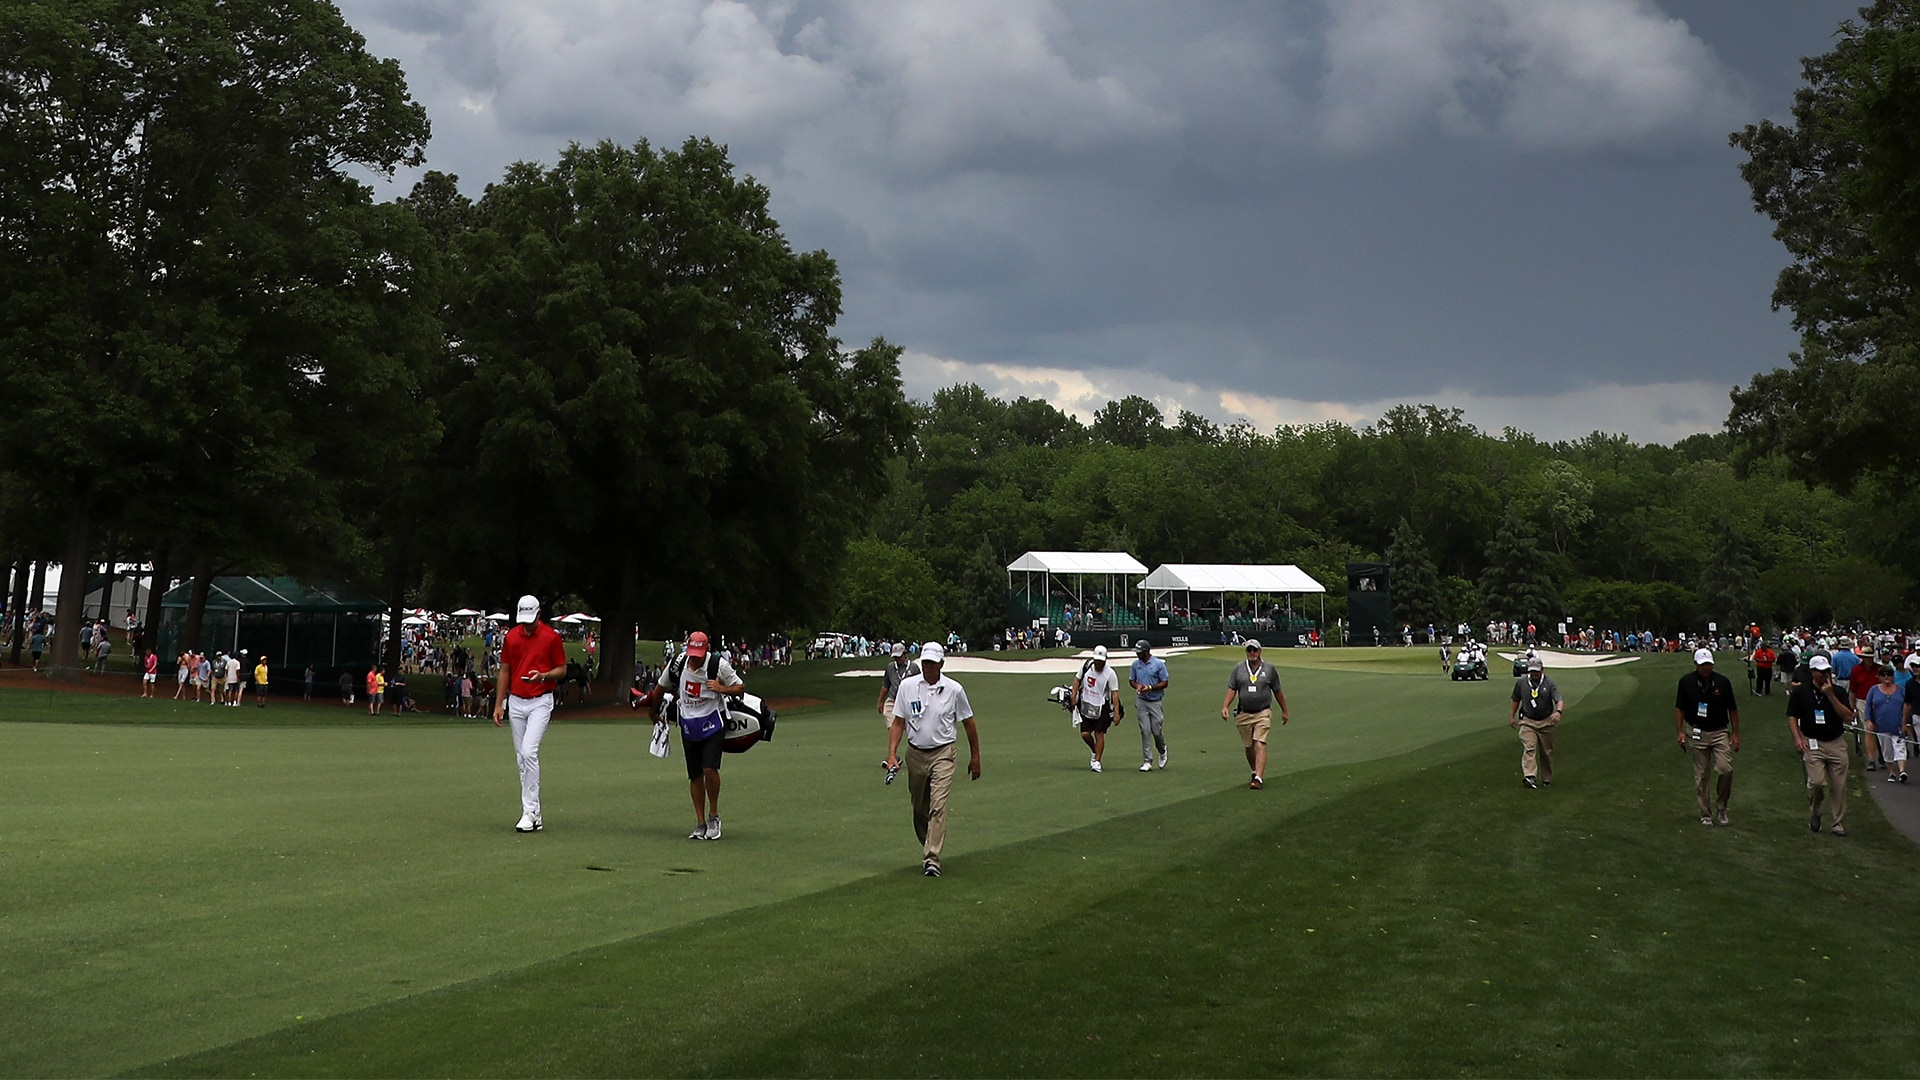 Another weather delay: Wells Fargo final round resumed at 6